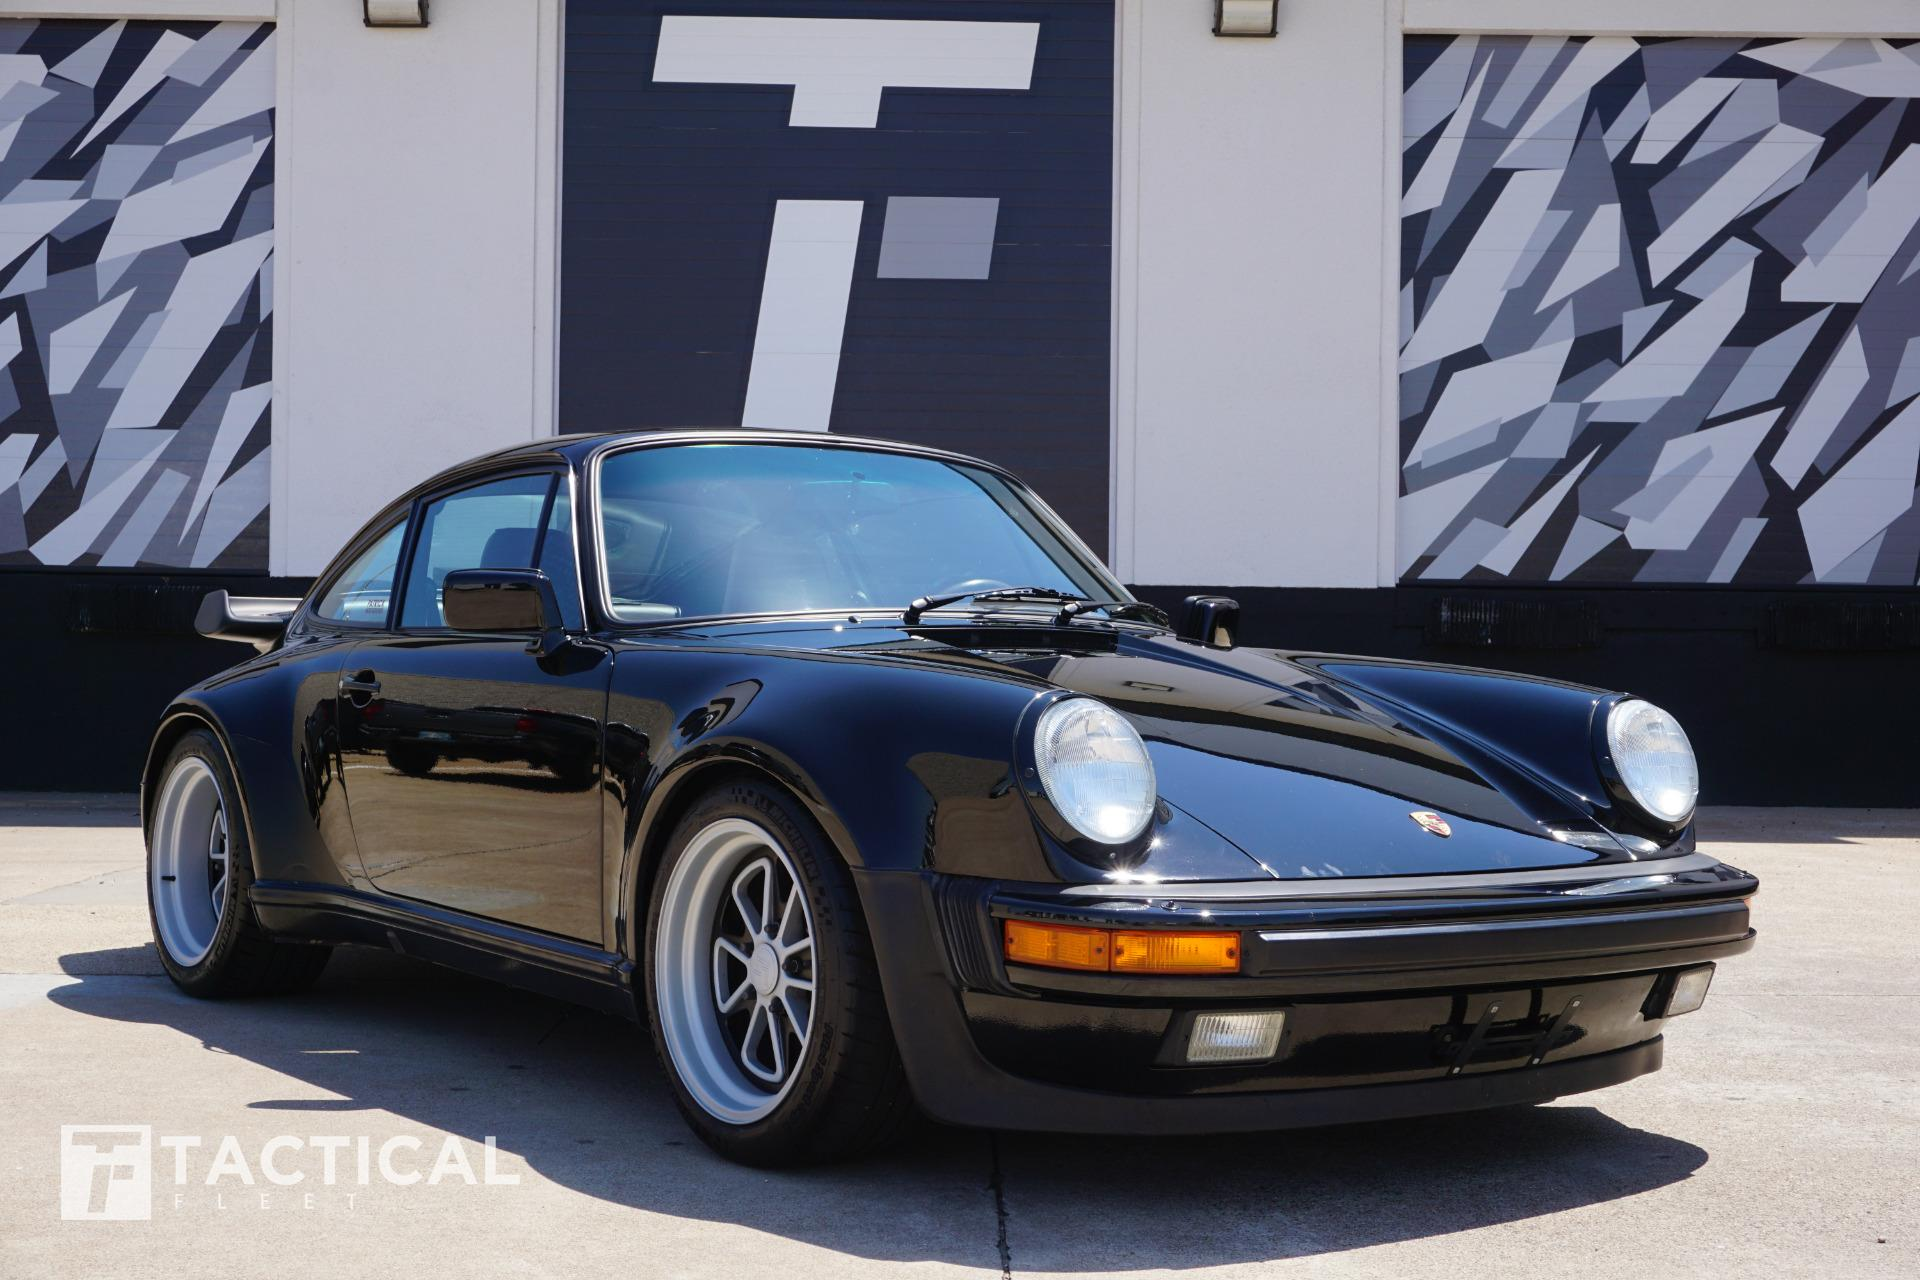 Used-1987-Porsche-911-Carrera-Turbo